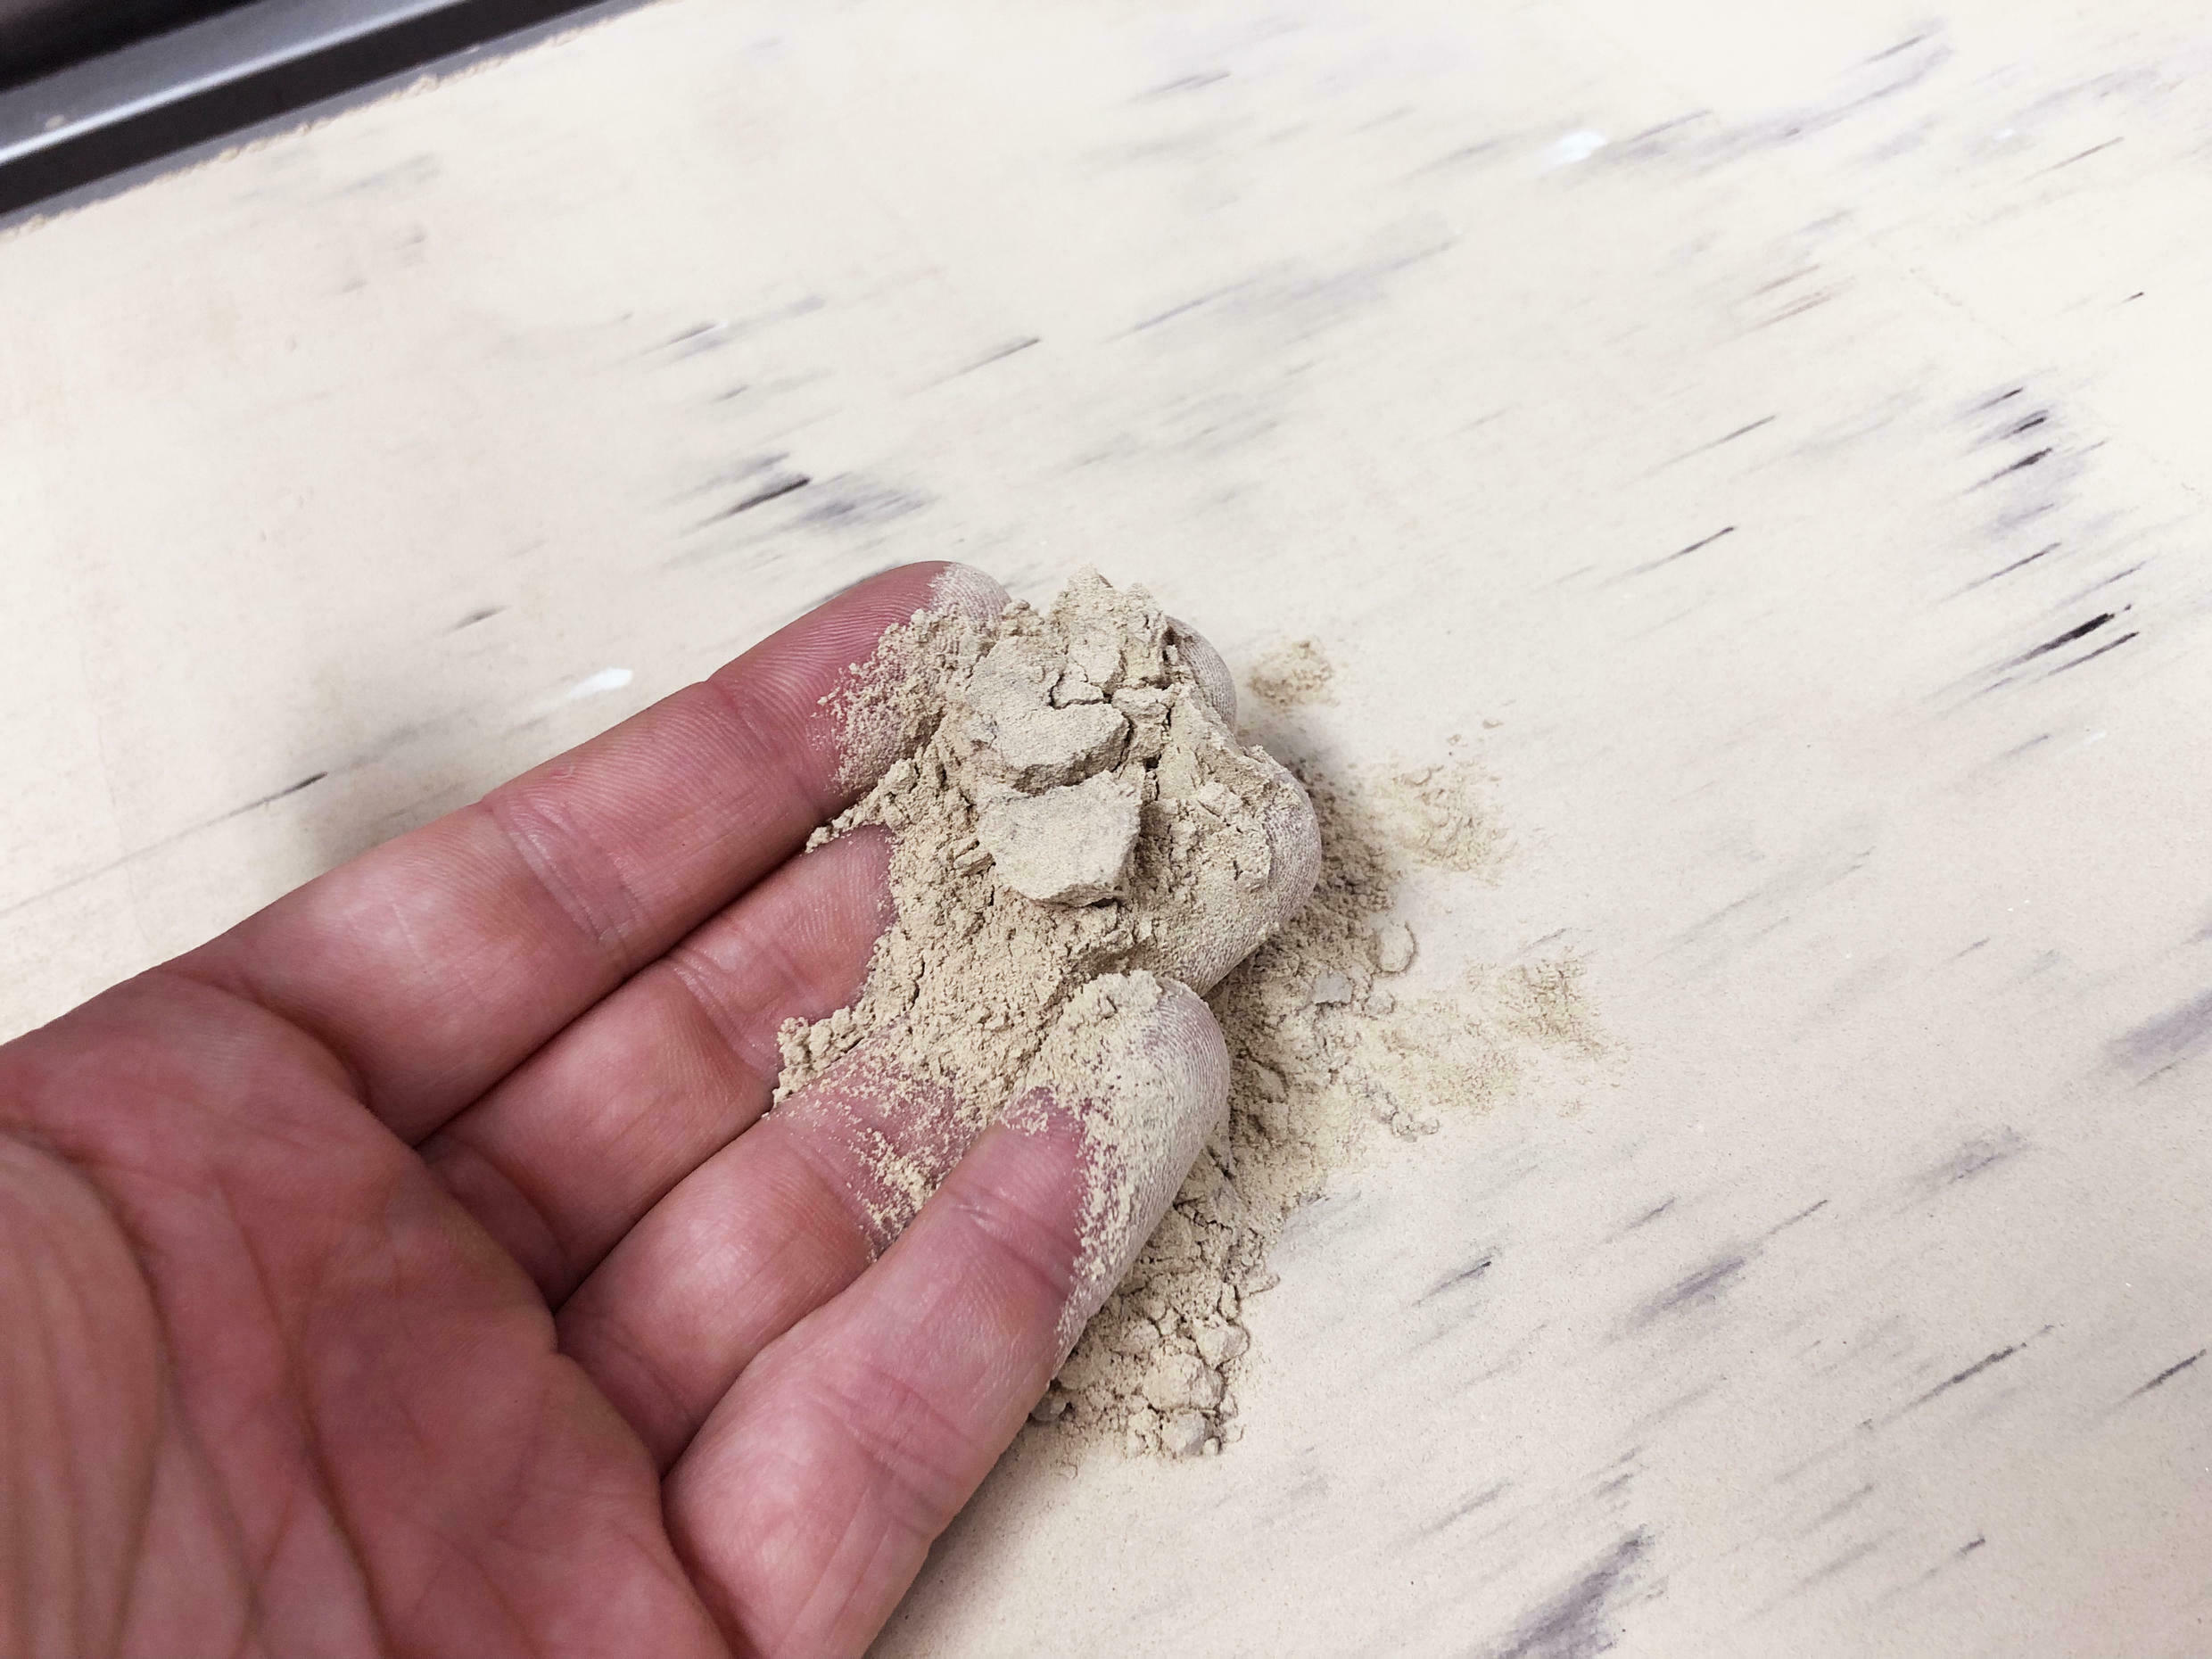 A mixture of limestone and ash loaded into a 3D printer